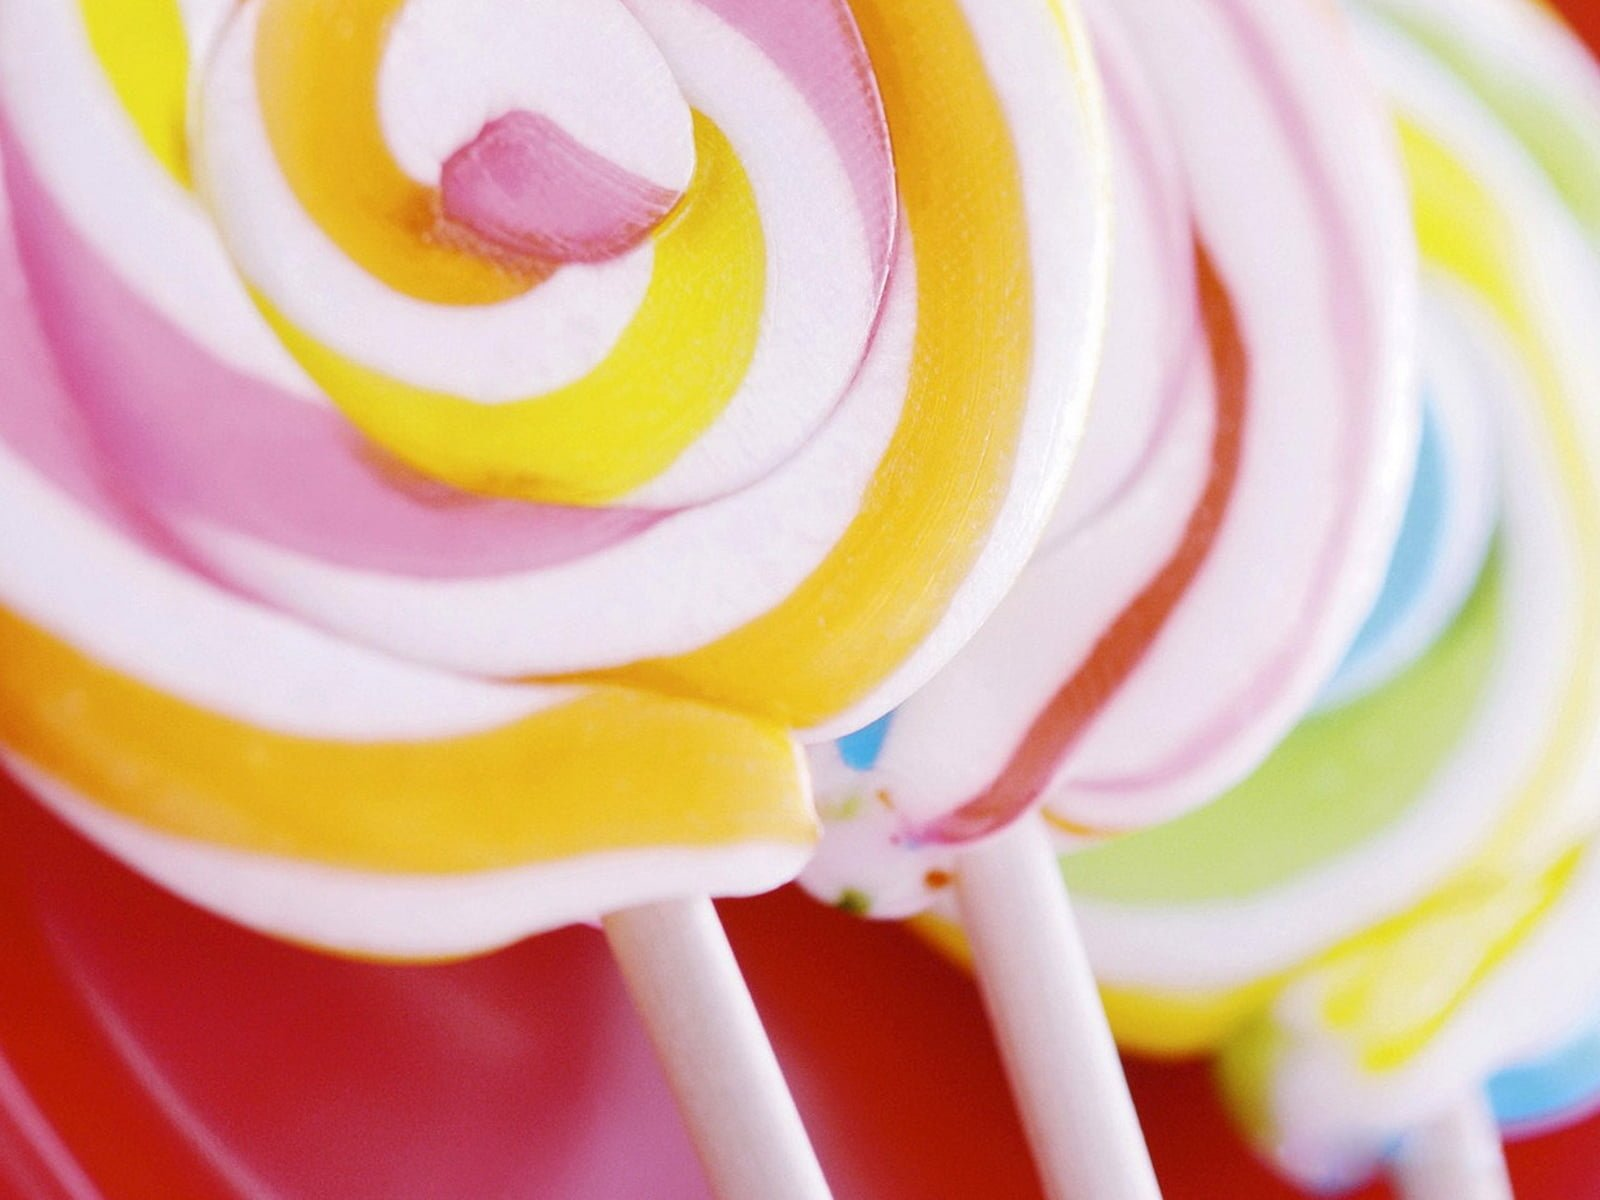 Close view of two swirled lollipops HD wallpaper Wallpaper Flare 1600x1200